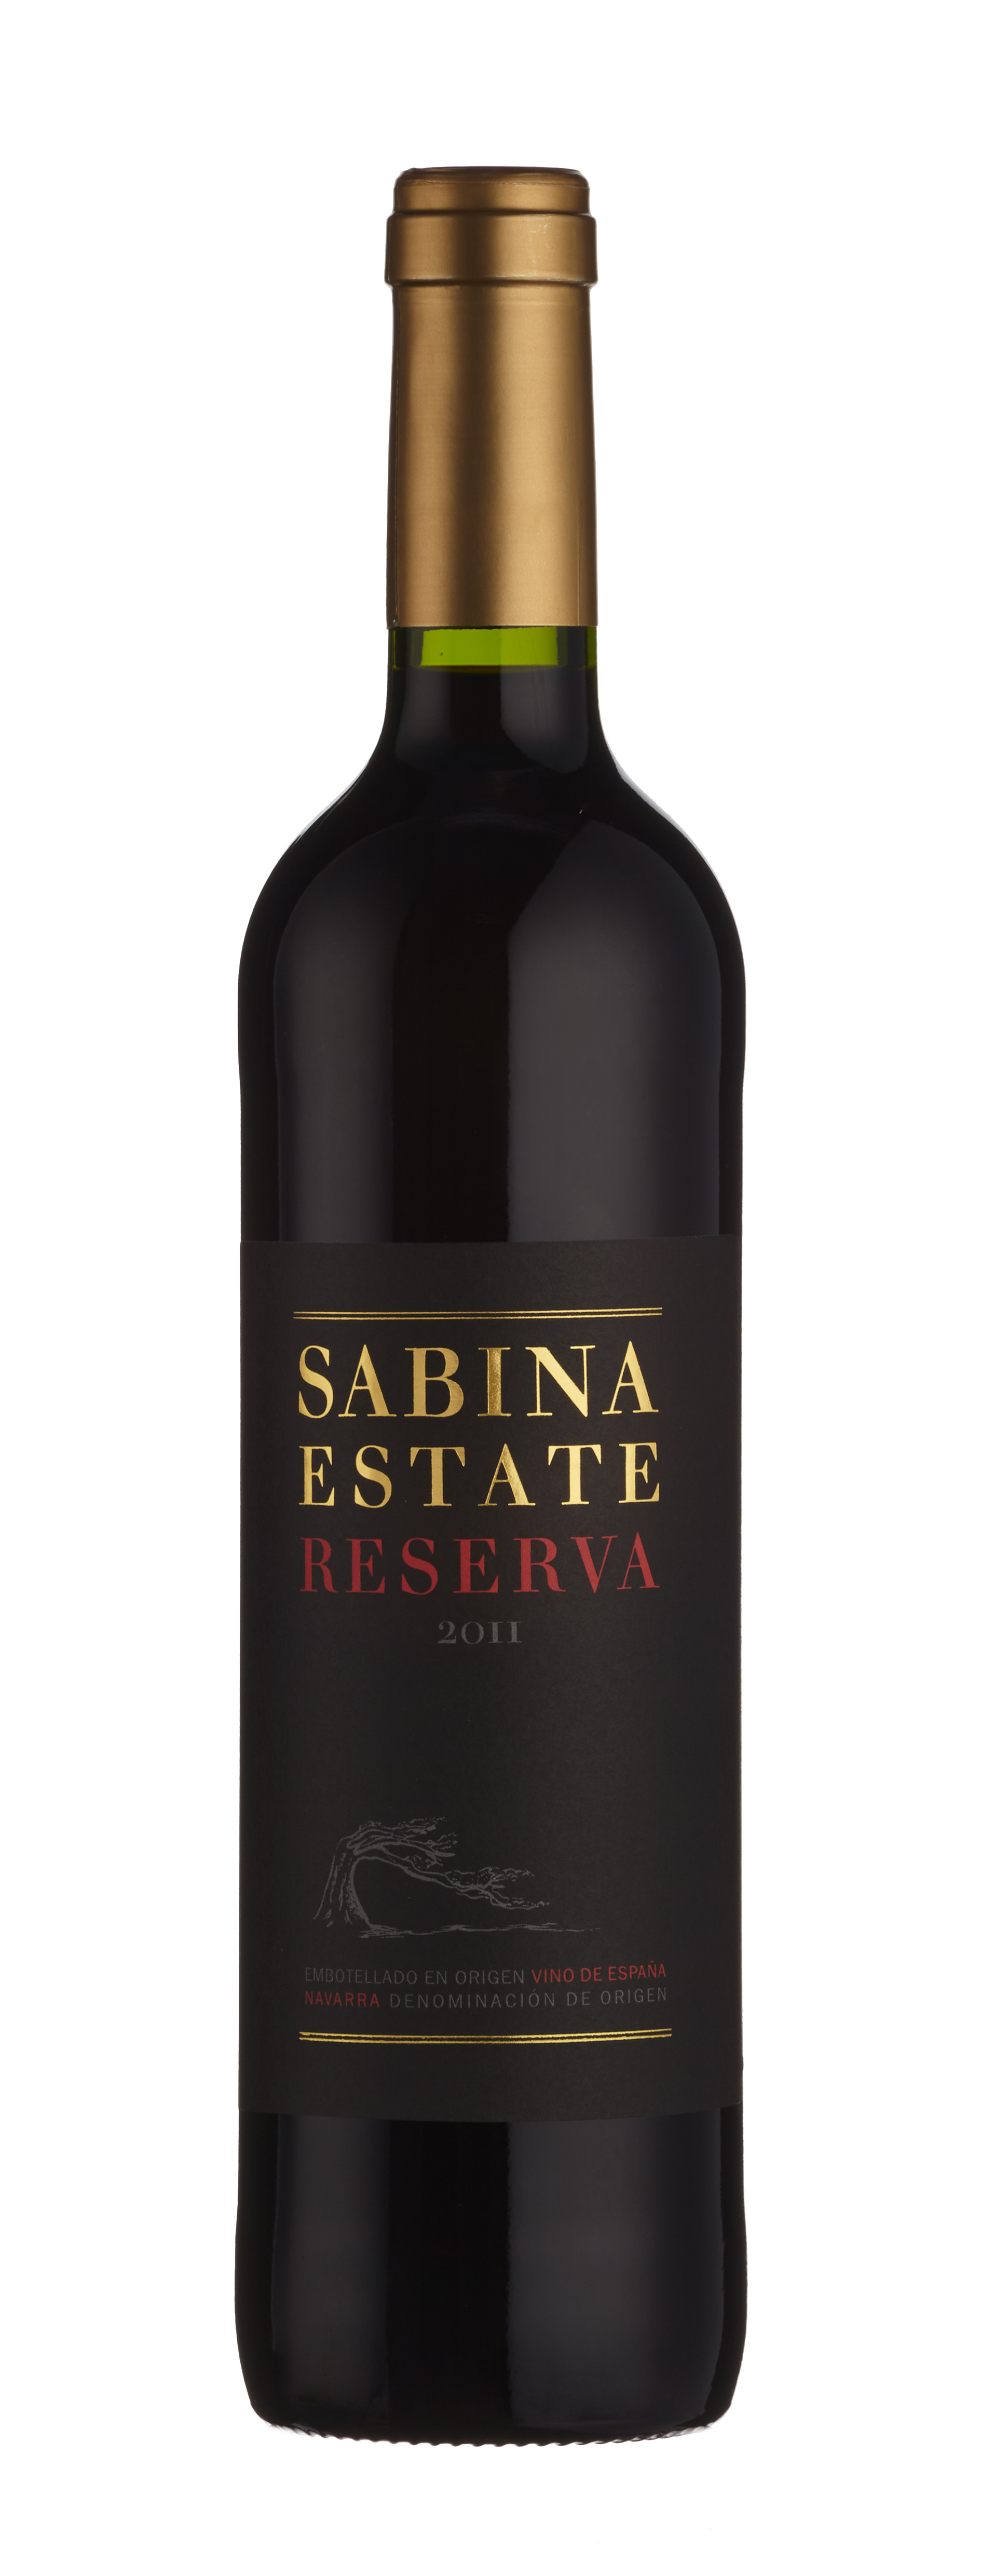 Sabina Estate Reserva